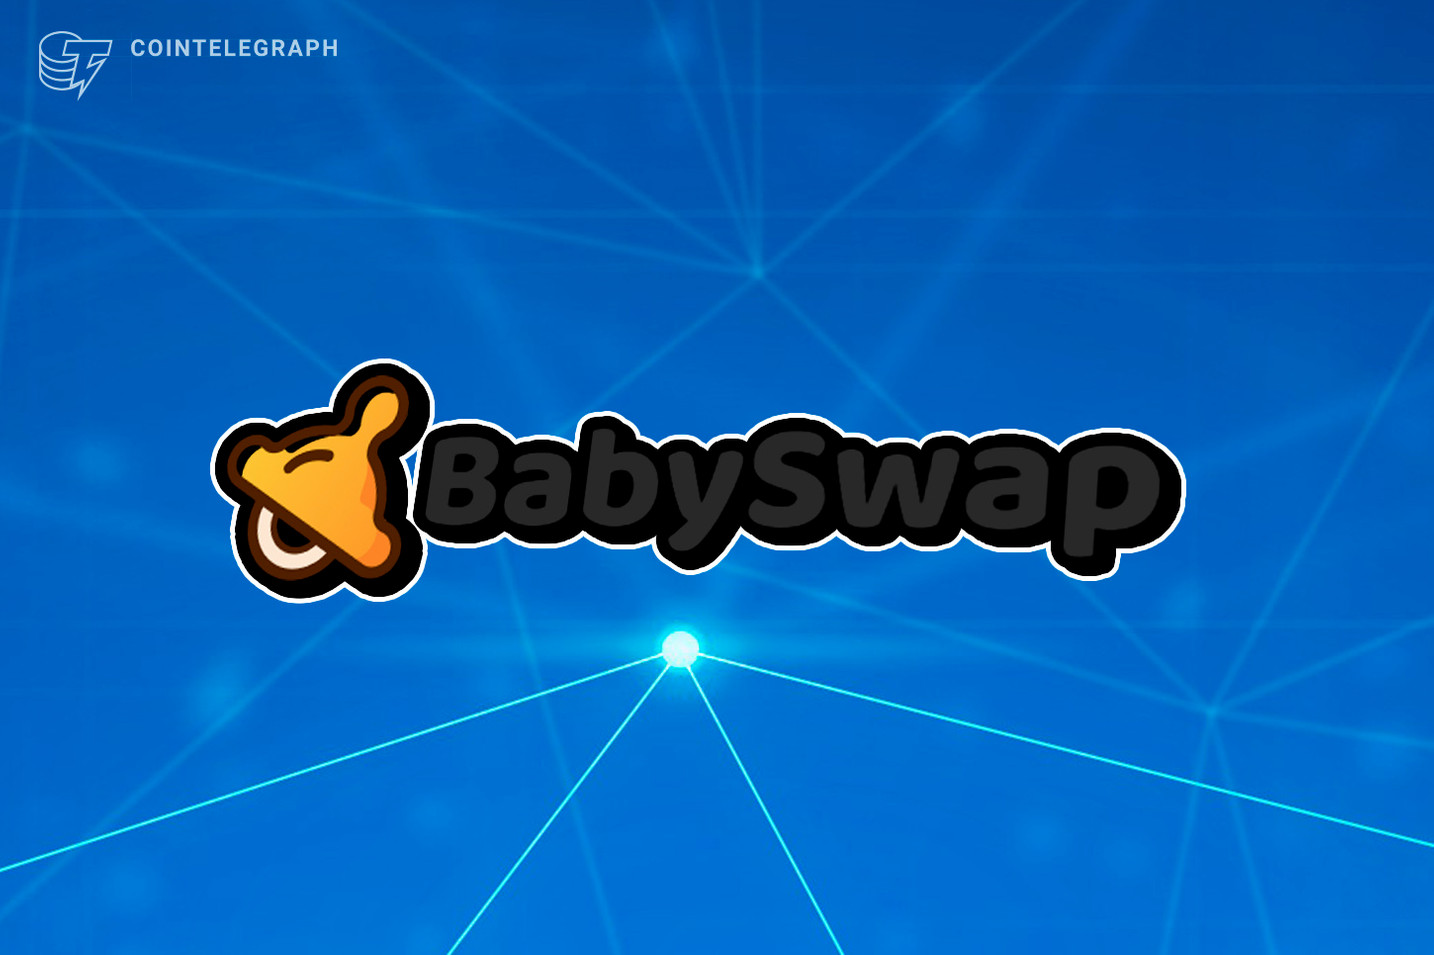 BabySwap's Crazy APR is the best choice for investors